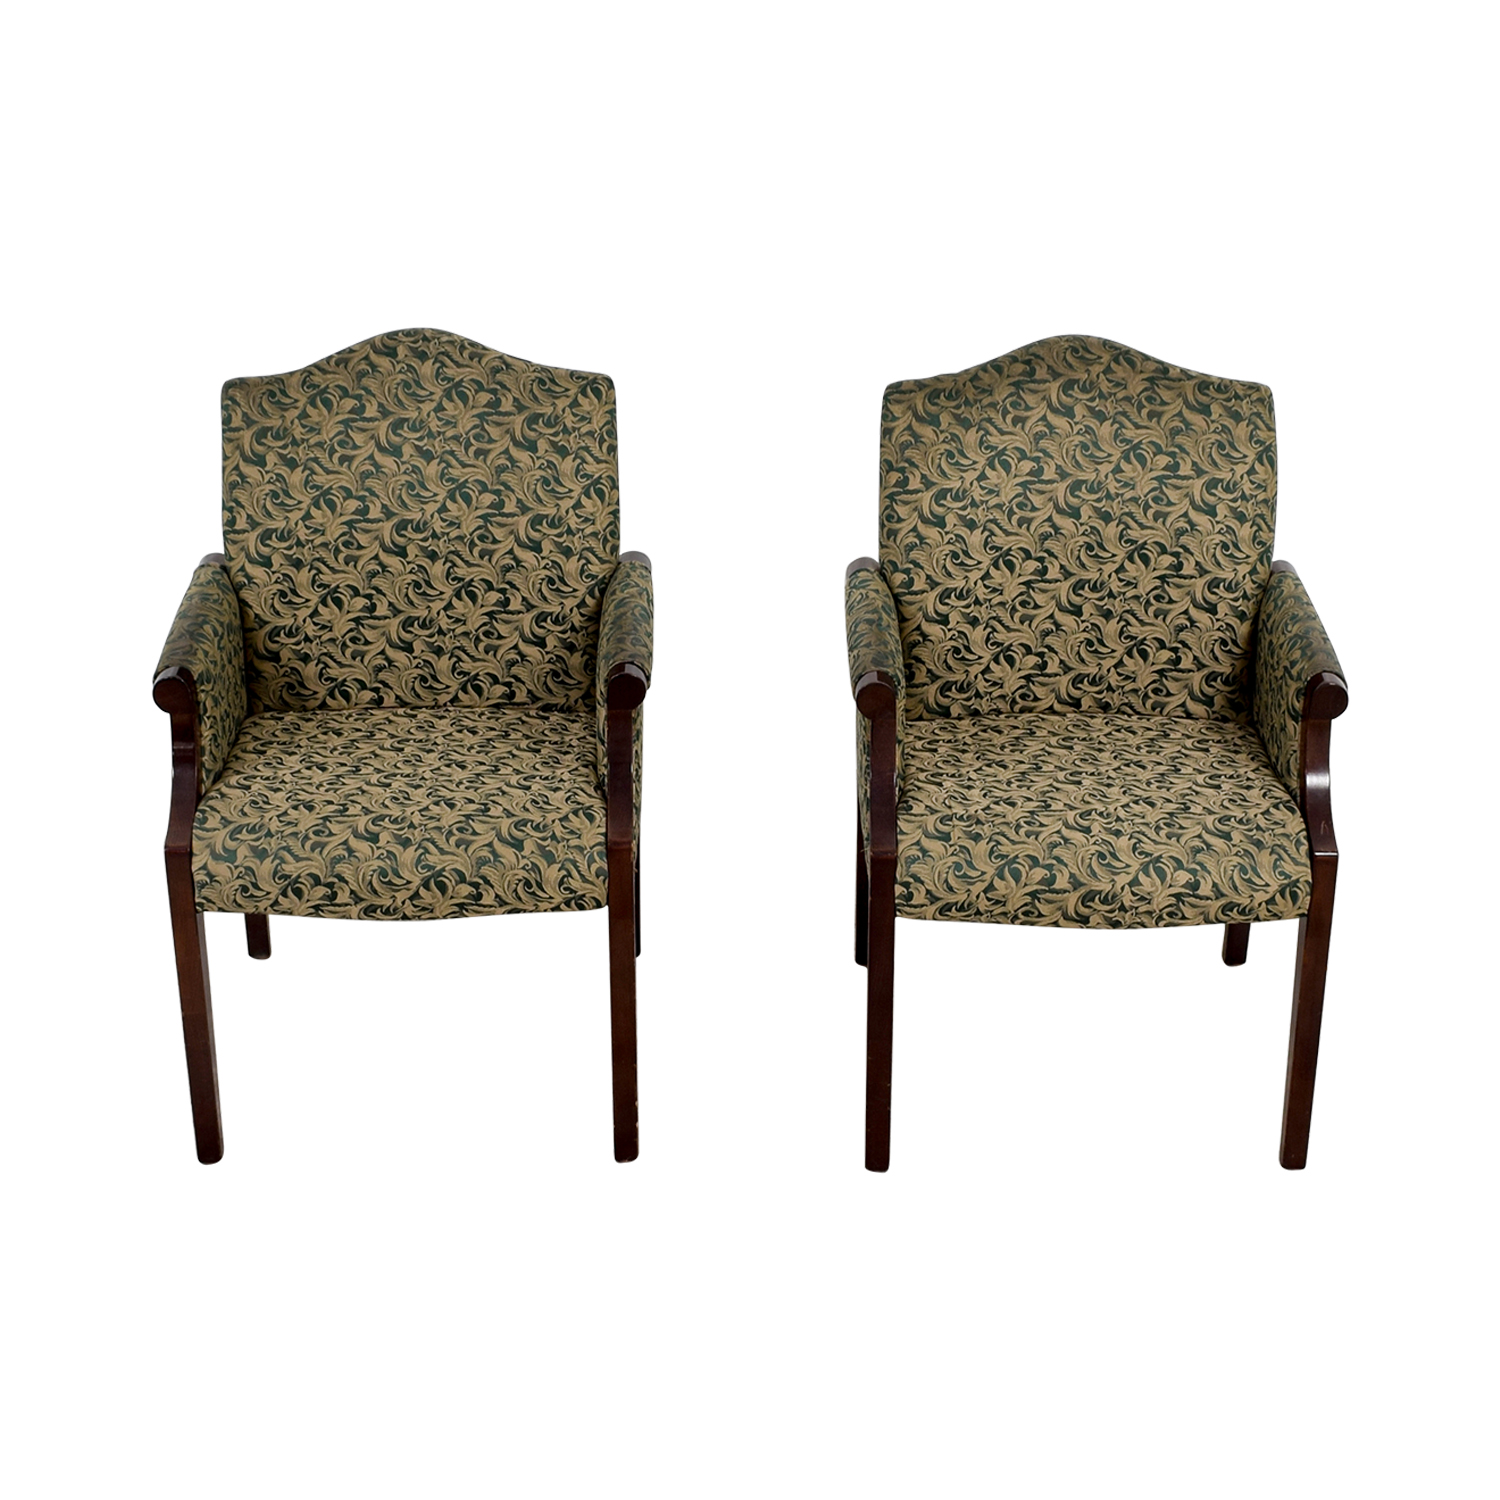 ... Paoli Paoli Green Leaf Upholstered Accent Chairs Second Hand ...